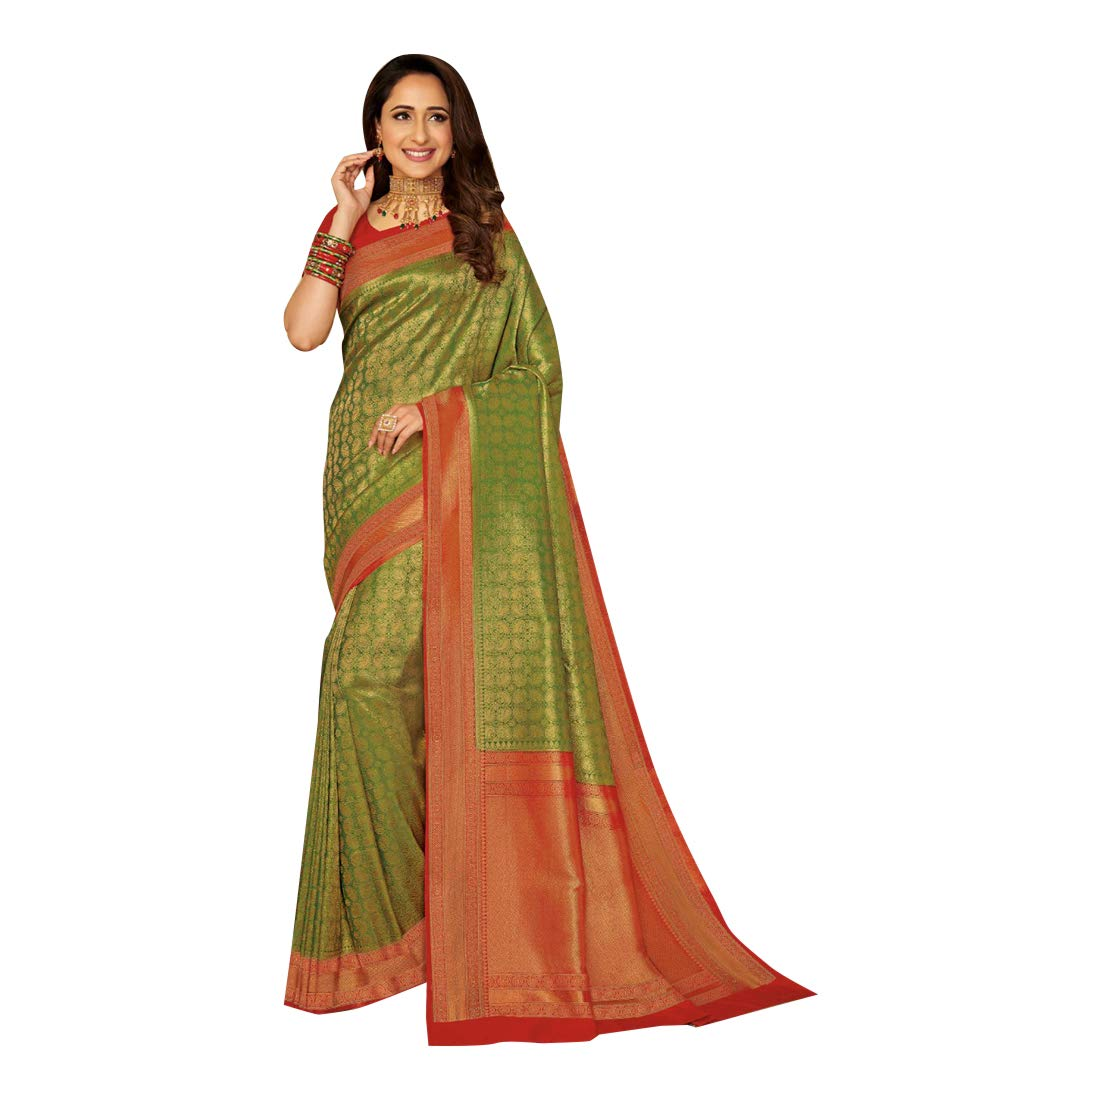 Latest Indian Traditional Festive Party wear Silk Sari for Women Saree with Blouse piece Designer collection 7918